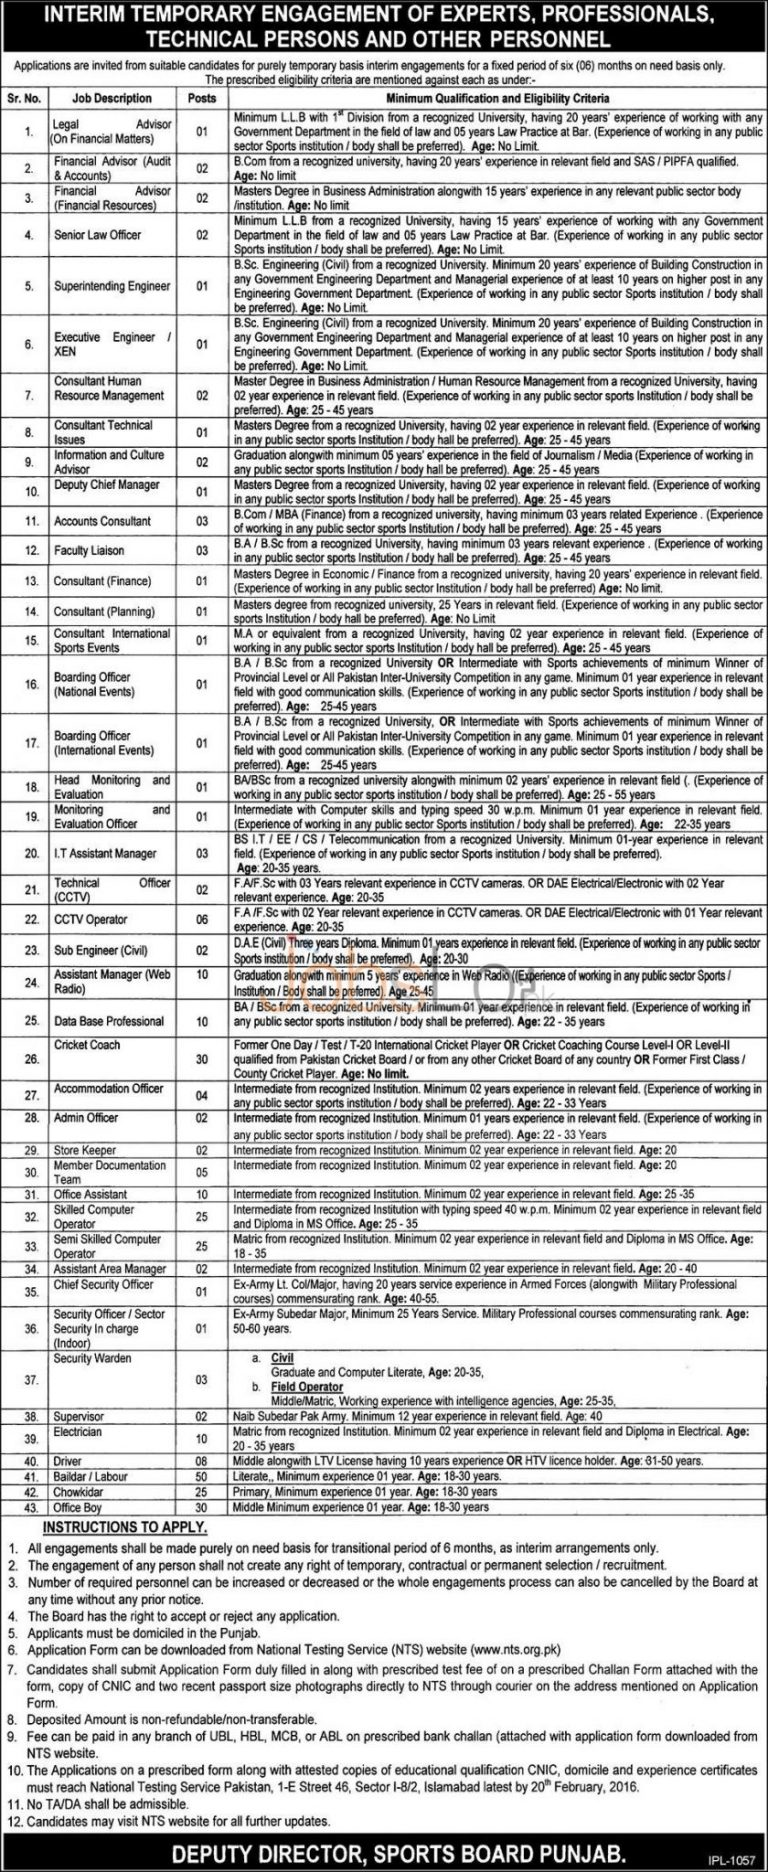 Sports Board Jobs in Punjab 31st January 2016 For Technical Persons